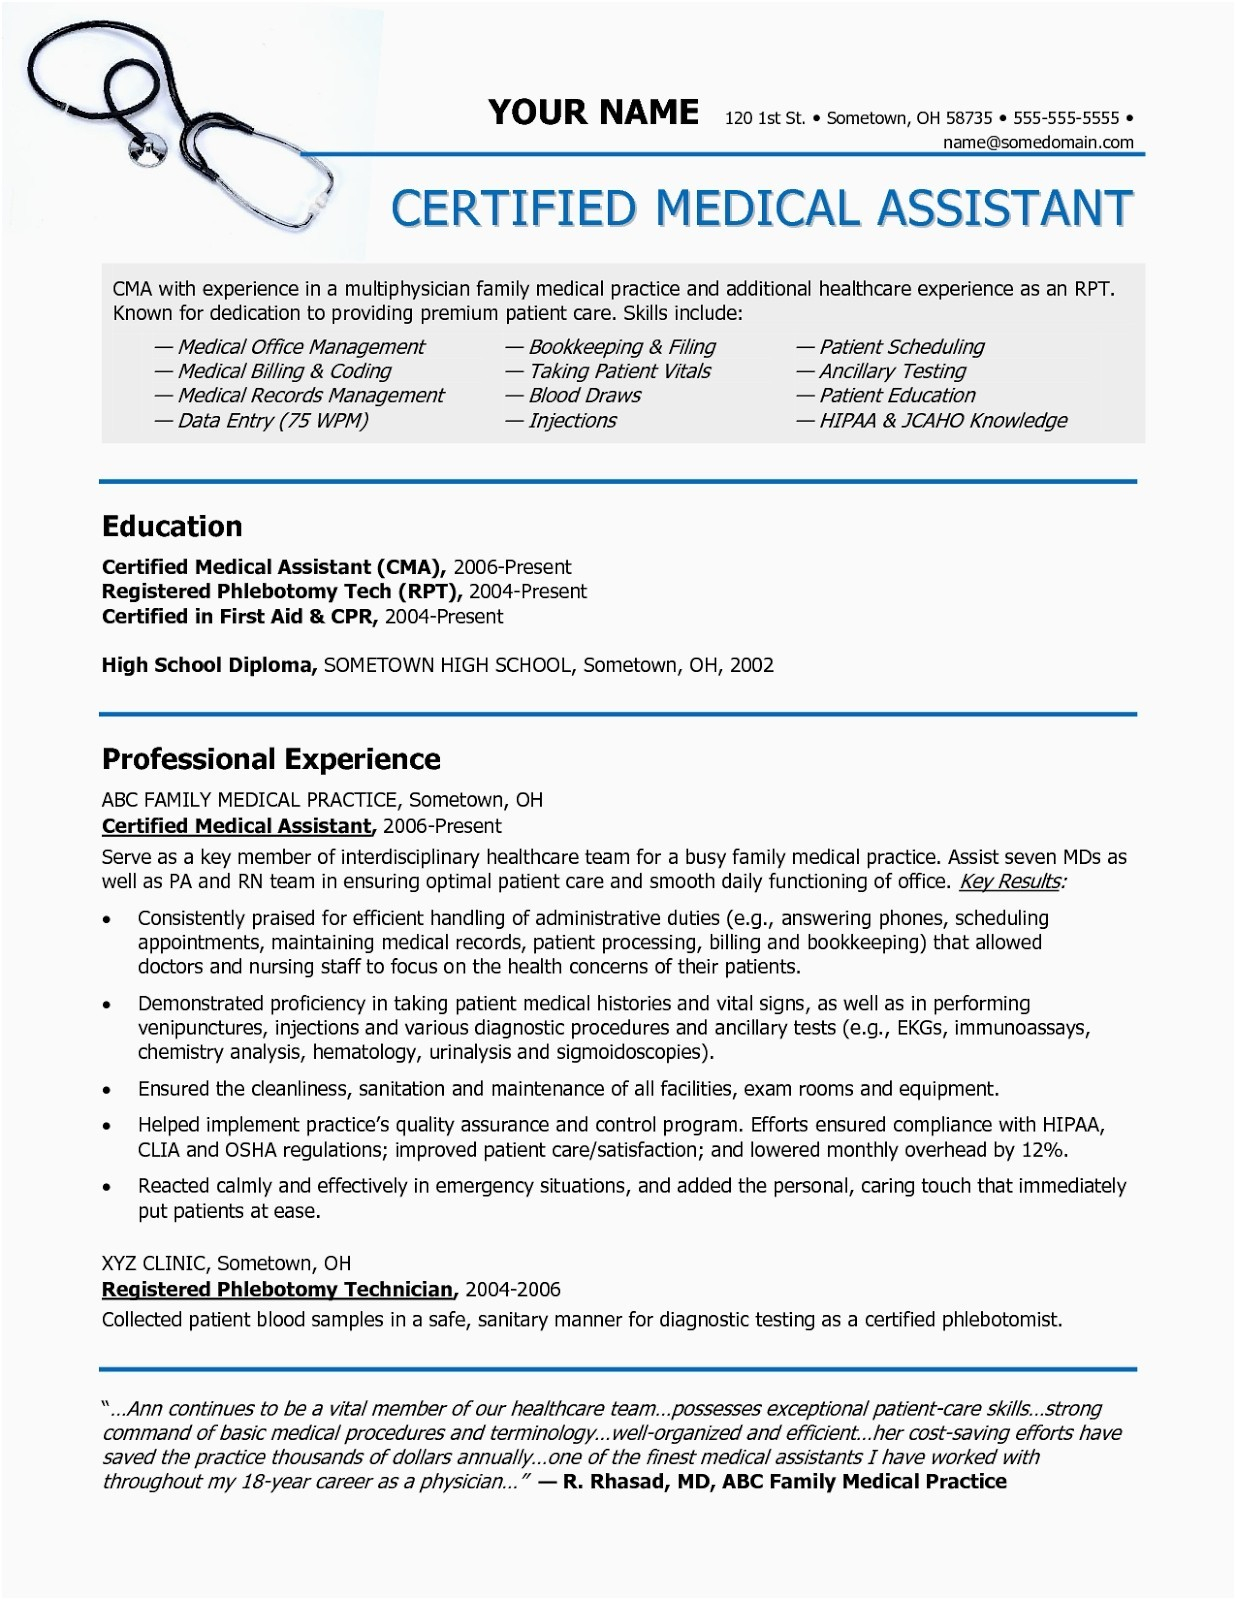 Medical Billing Resume Objective - Objective for Resume Healthcare Example Unique Good Resume Objective